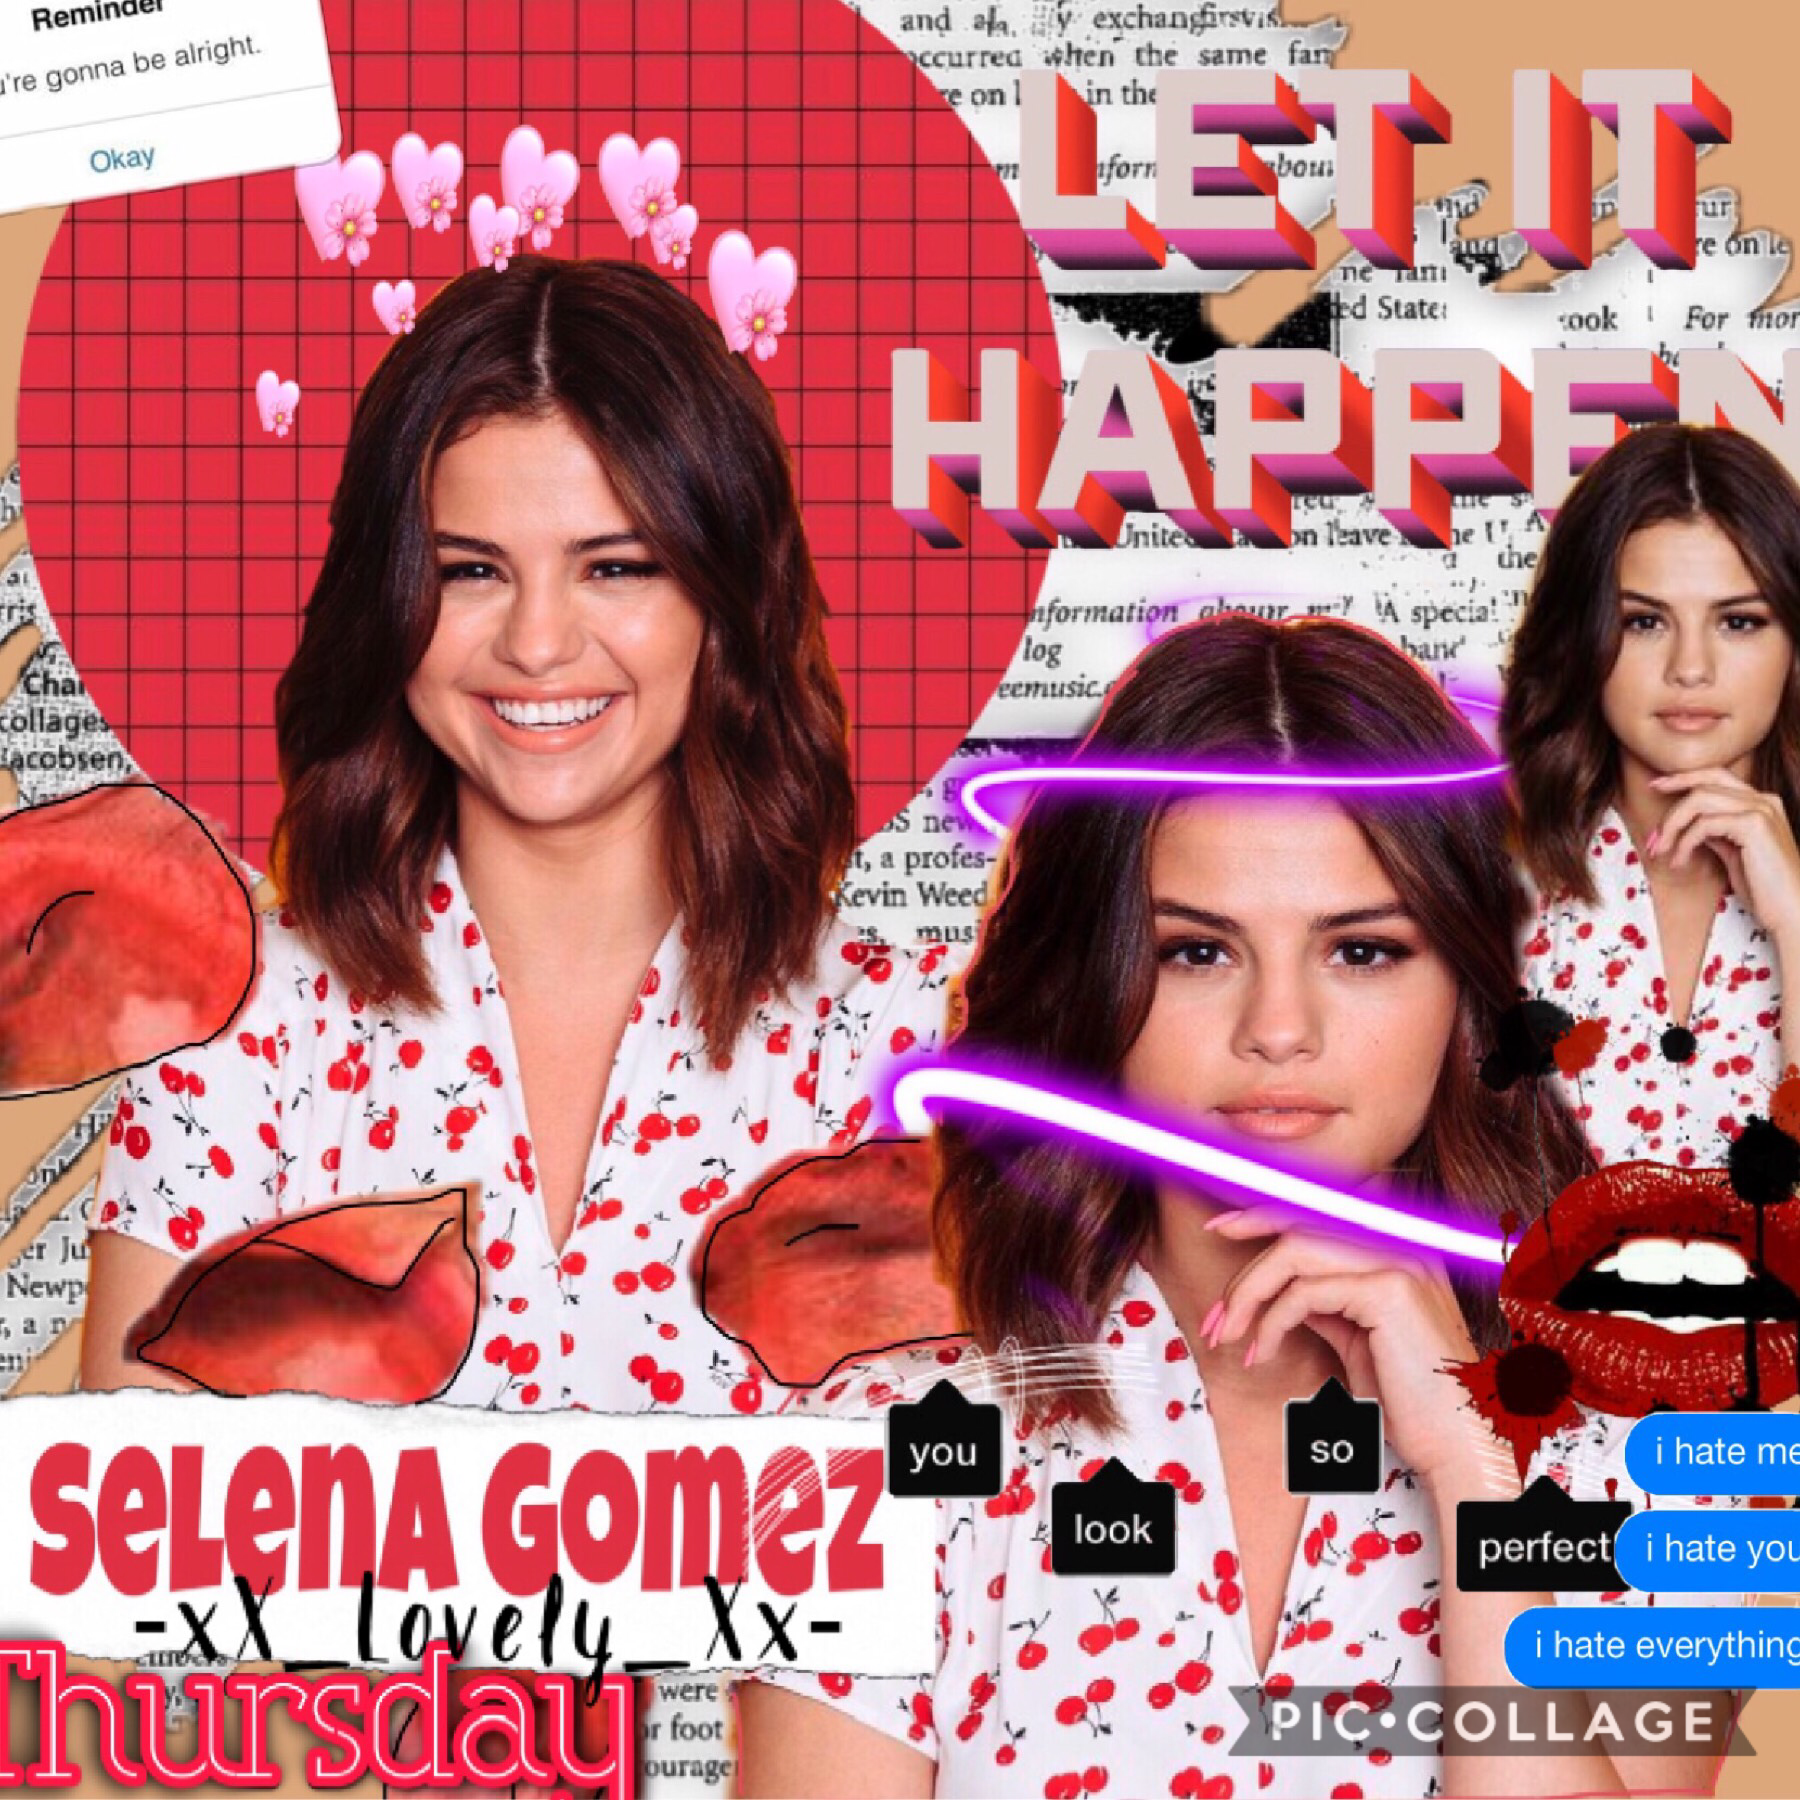 ❤️Tap❤️ Here is a Selena edit!!! I know it looks ugly especially compared to the one I posted before this but I thought y'all deserve to see it.